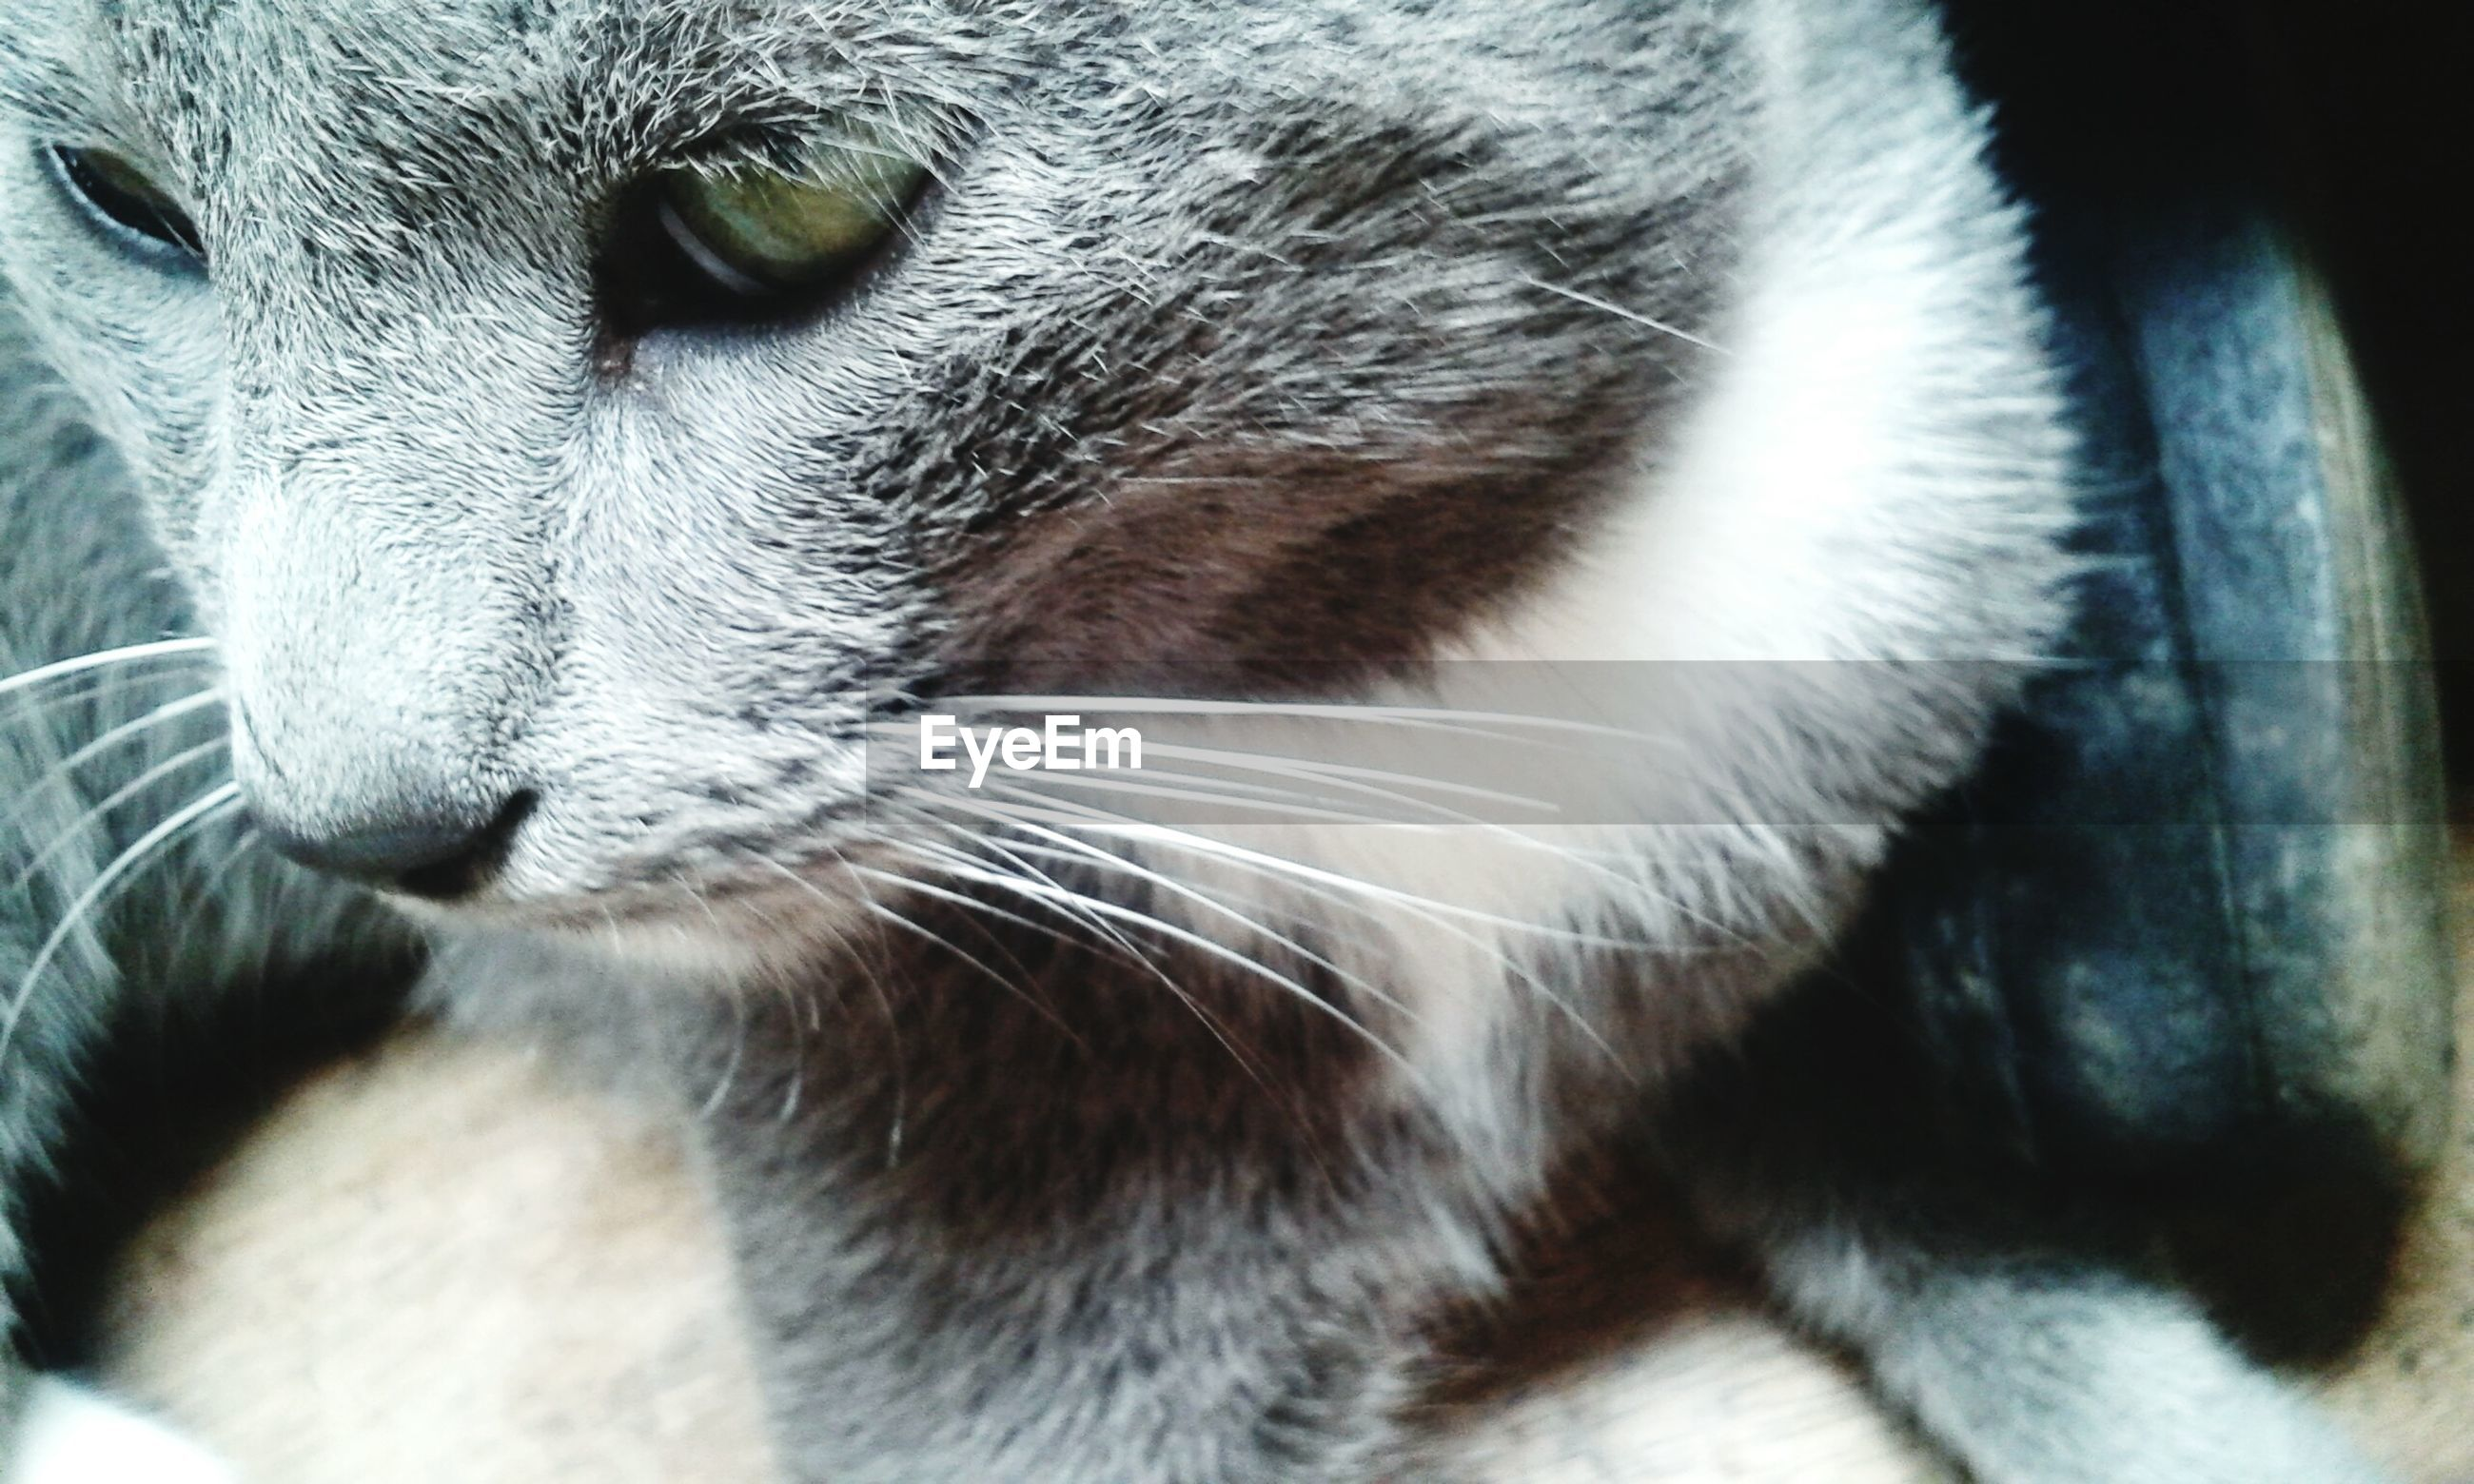 domestic cat, one animal, pets, domestic animals, feline, animal themes, mammal, cat, whisker, no people, close-up, animal head, portrait, day, indoors, nature